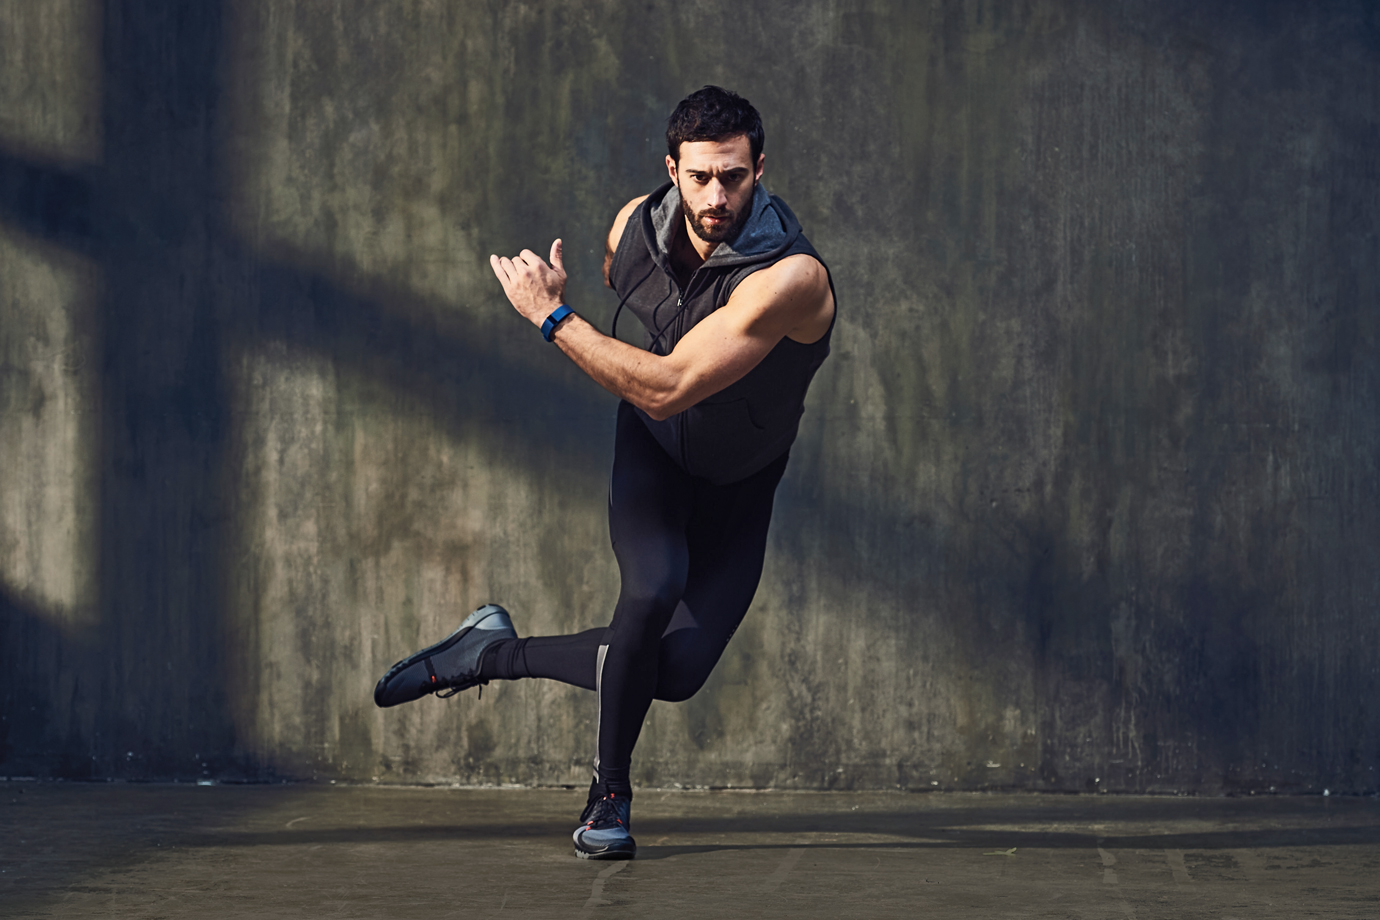 The 15-minute, Fat-burning Workout for Busy Guys